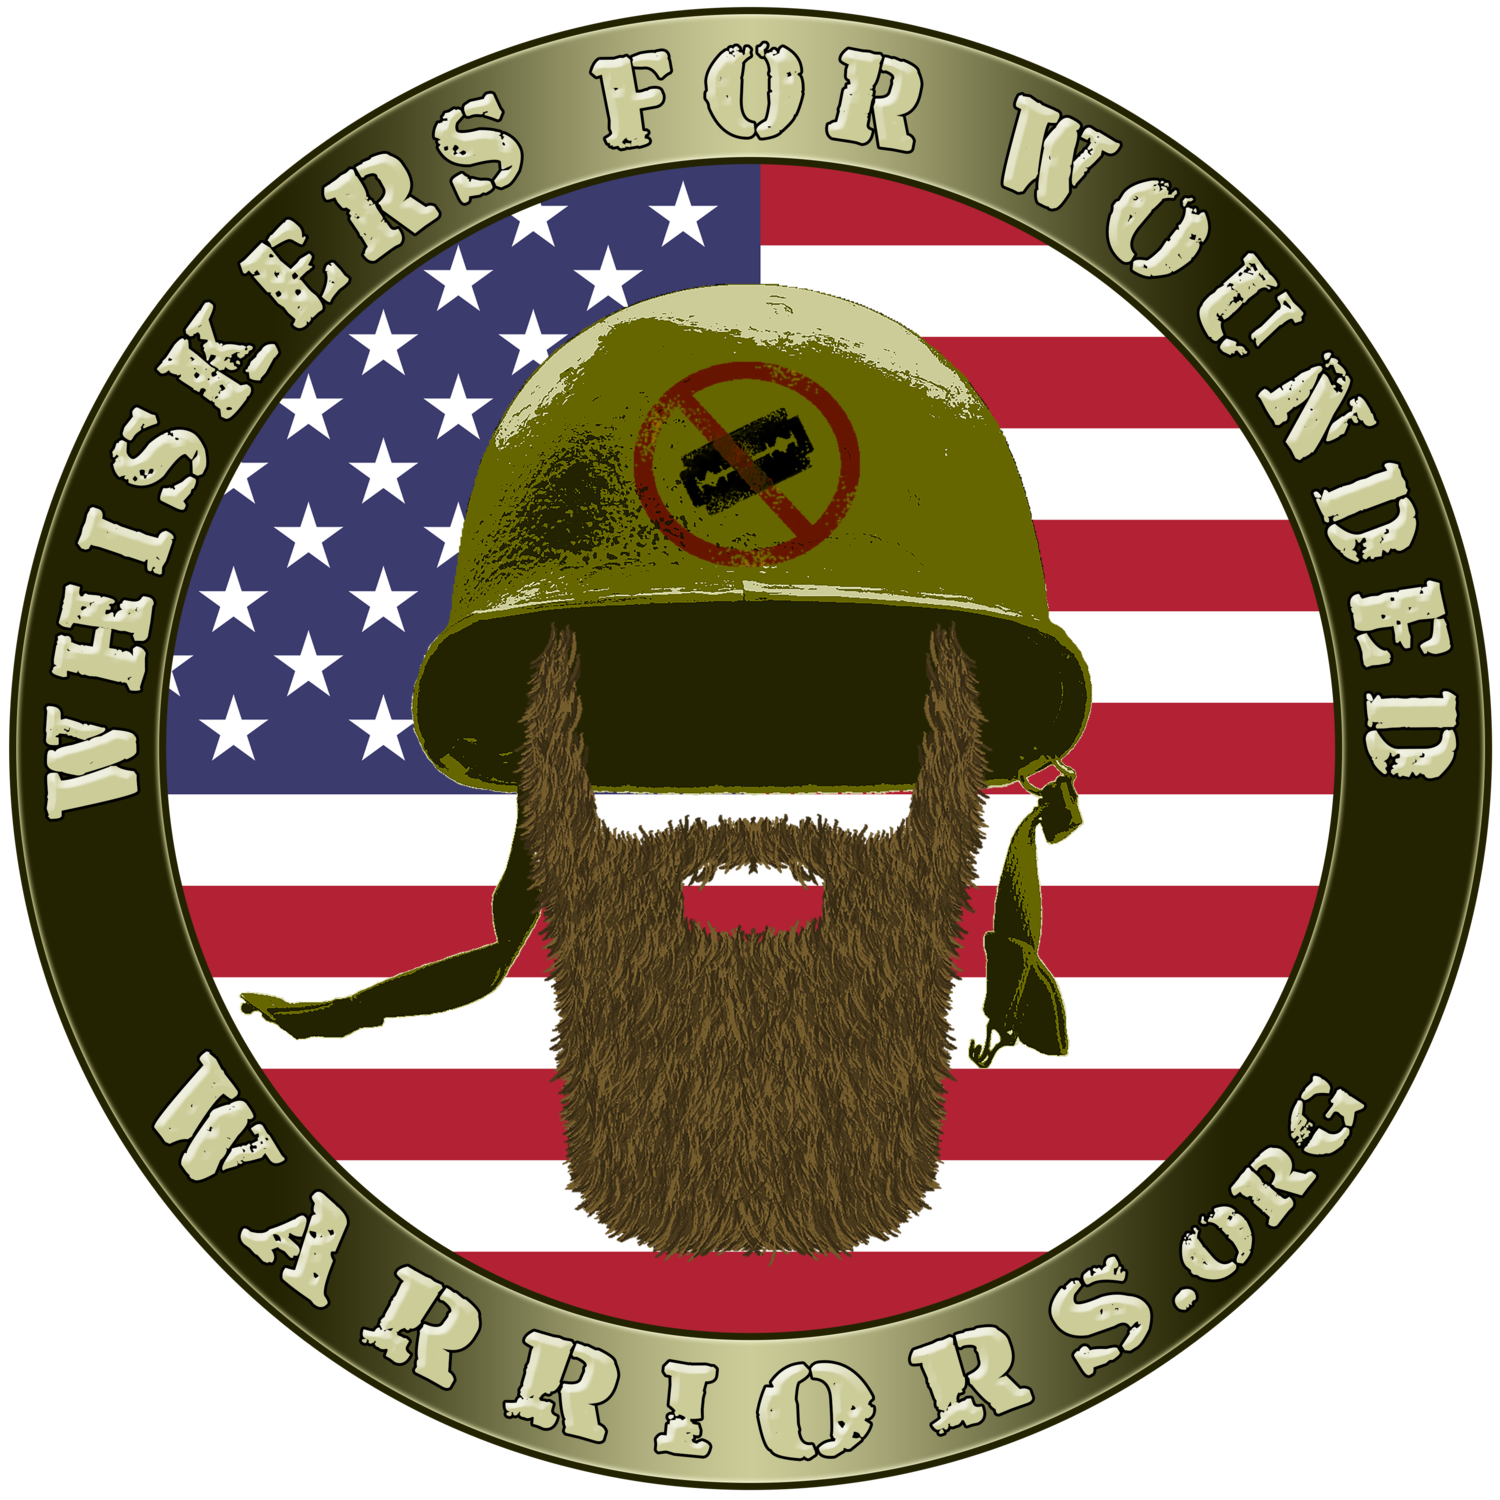 Hospital clipart hospital visit. Va whiskers for wounded